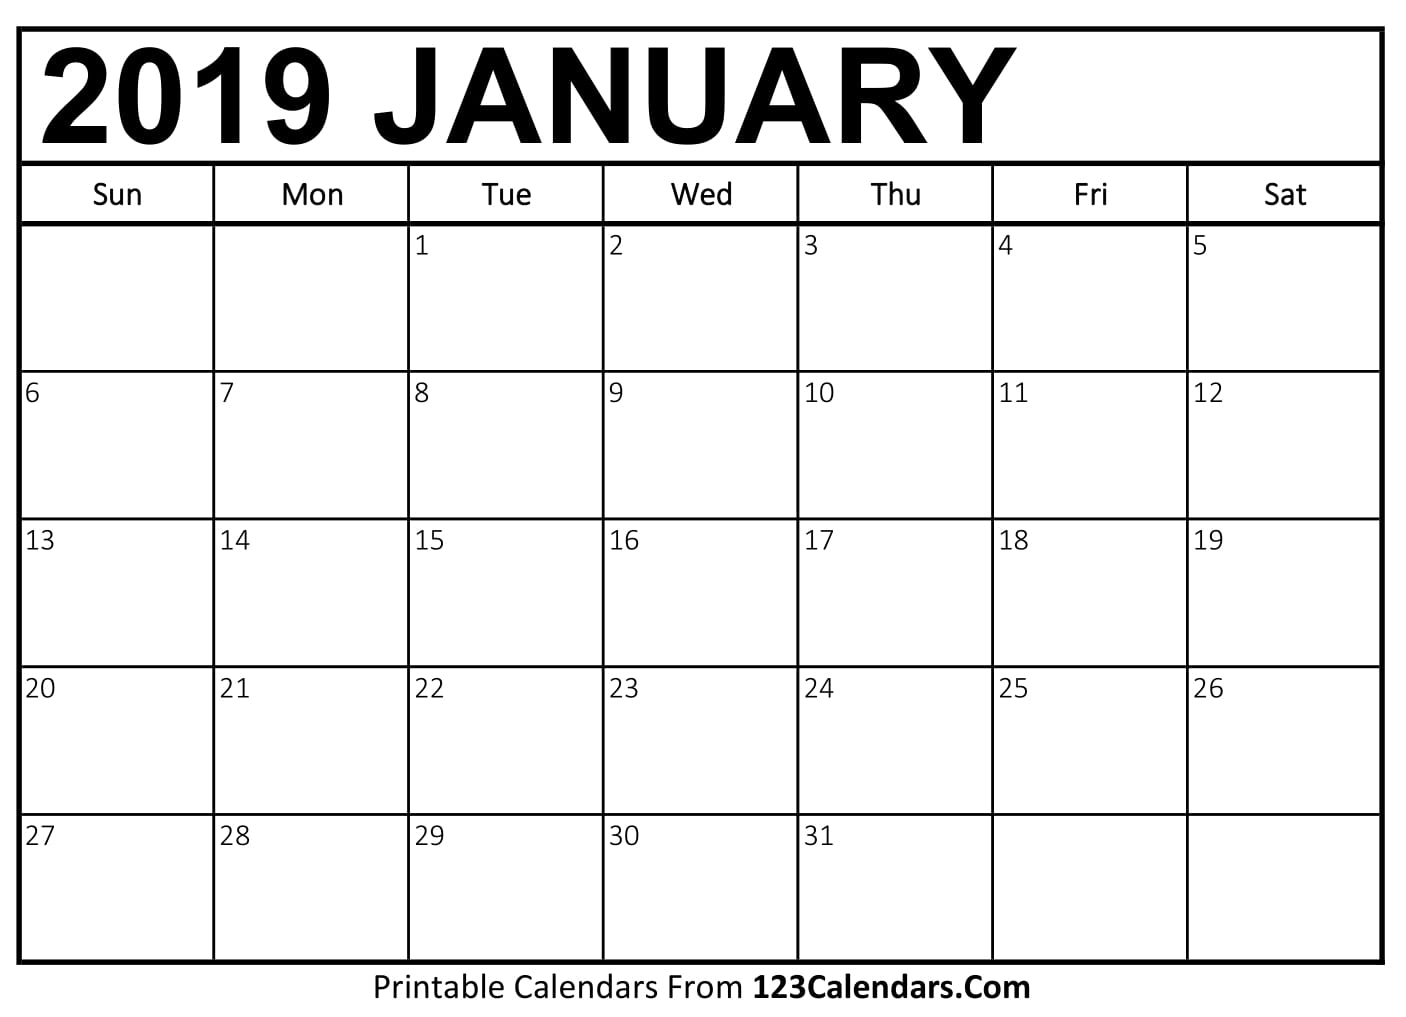 Picture Of January Calendar 2019 Free Printable Calendar | 123Calendars.com